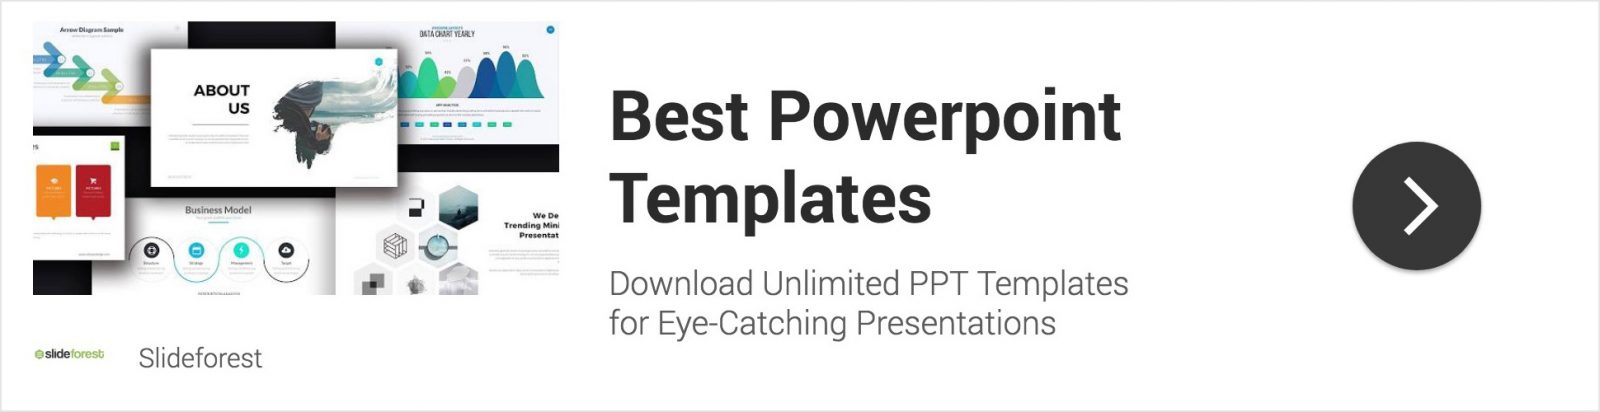 25 Free Simple Powerpoint Templates For Presentations